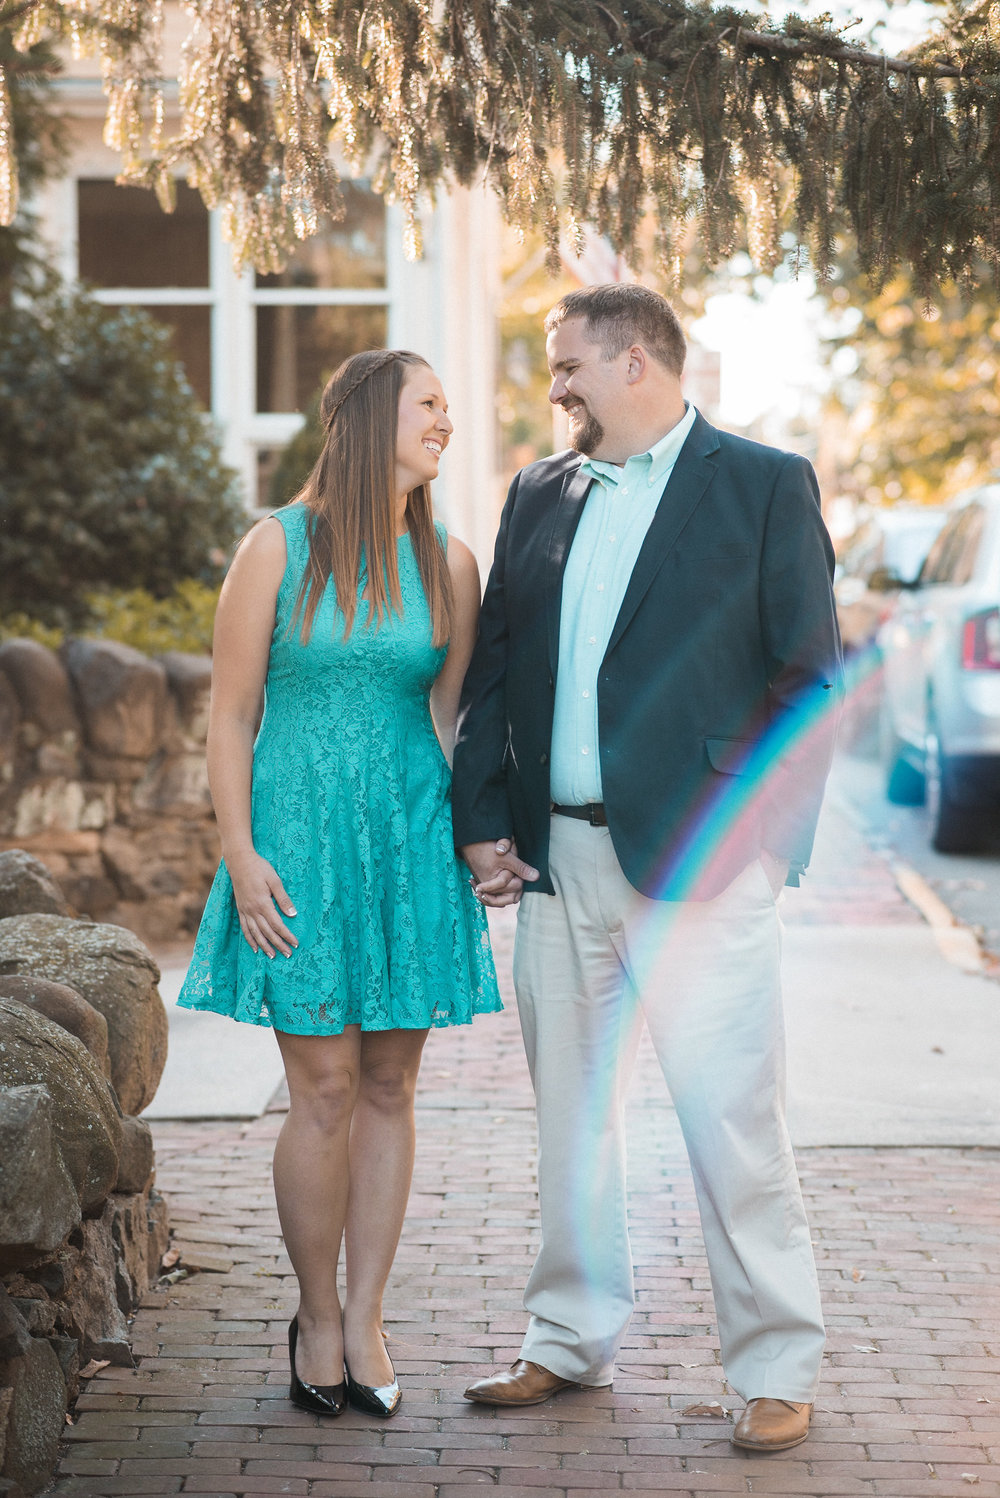 Couple standing on sidewalk holding hands